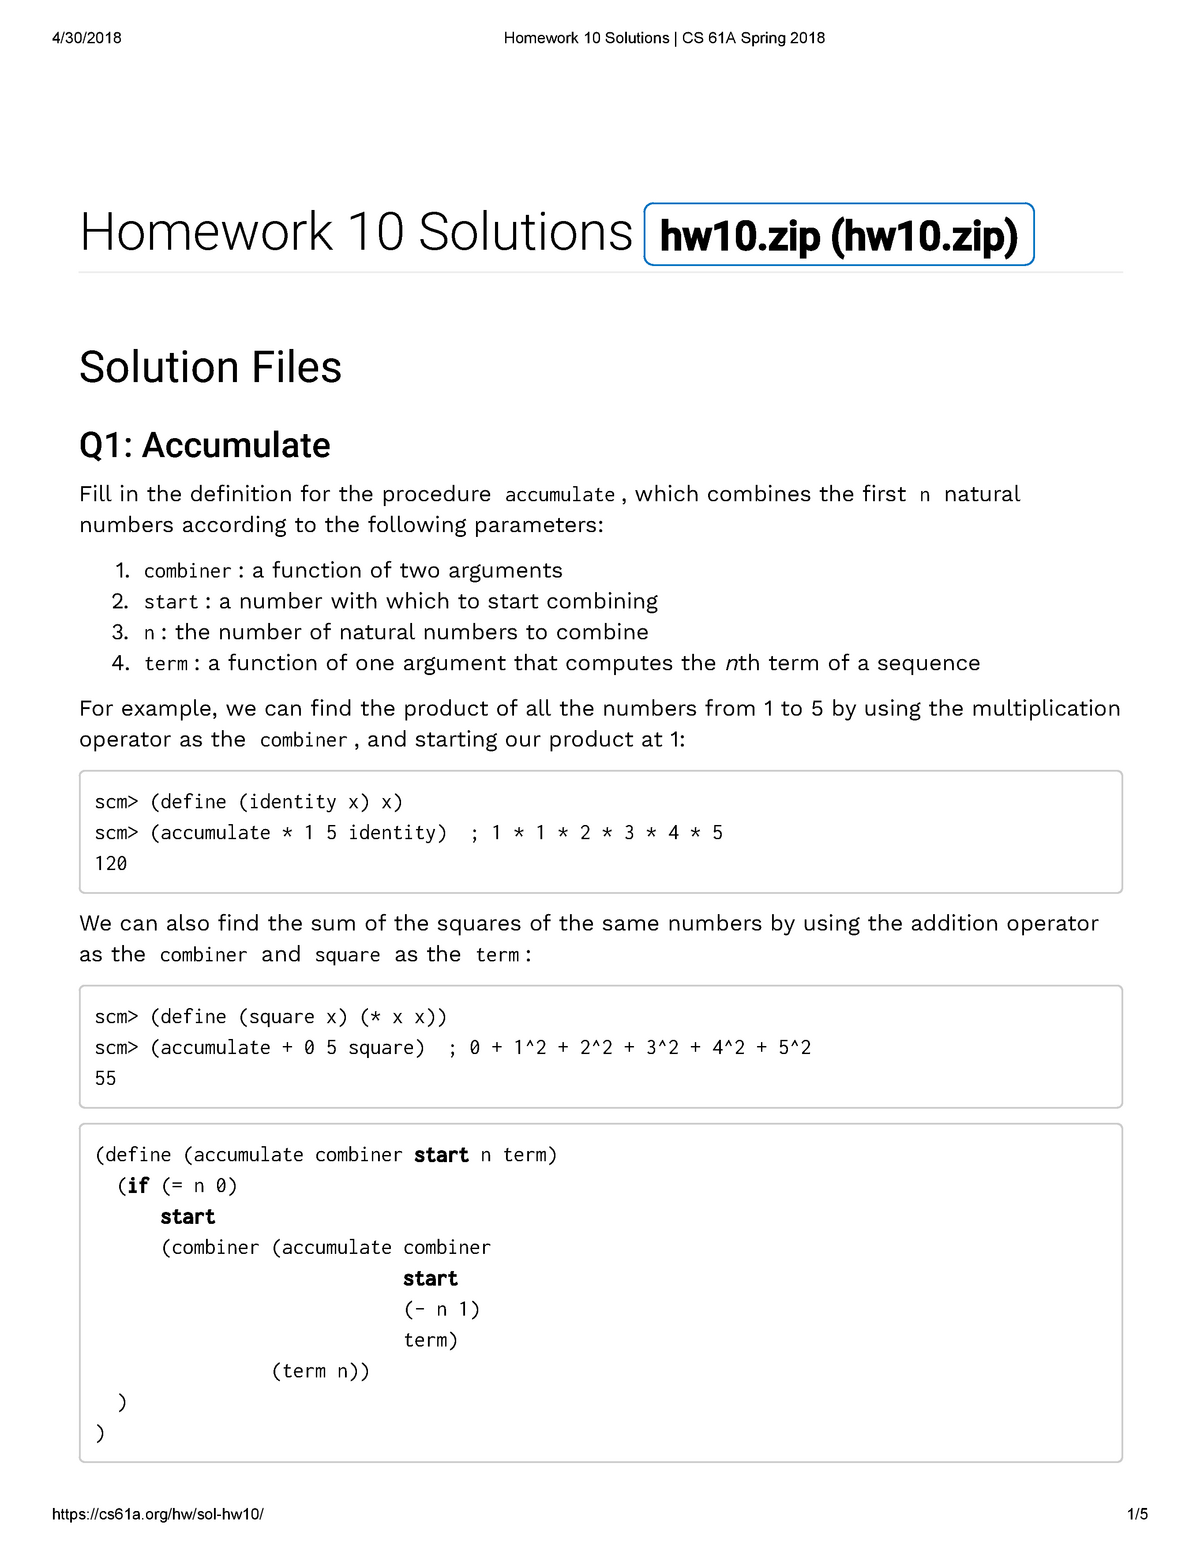 Homework 10 Solutions CS 61A Spring 2018 - COMPSCI 61A: The